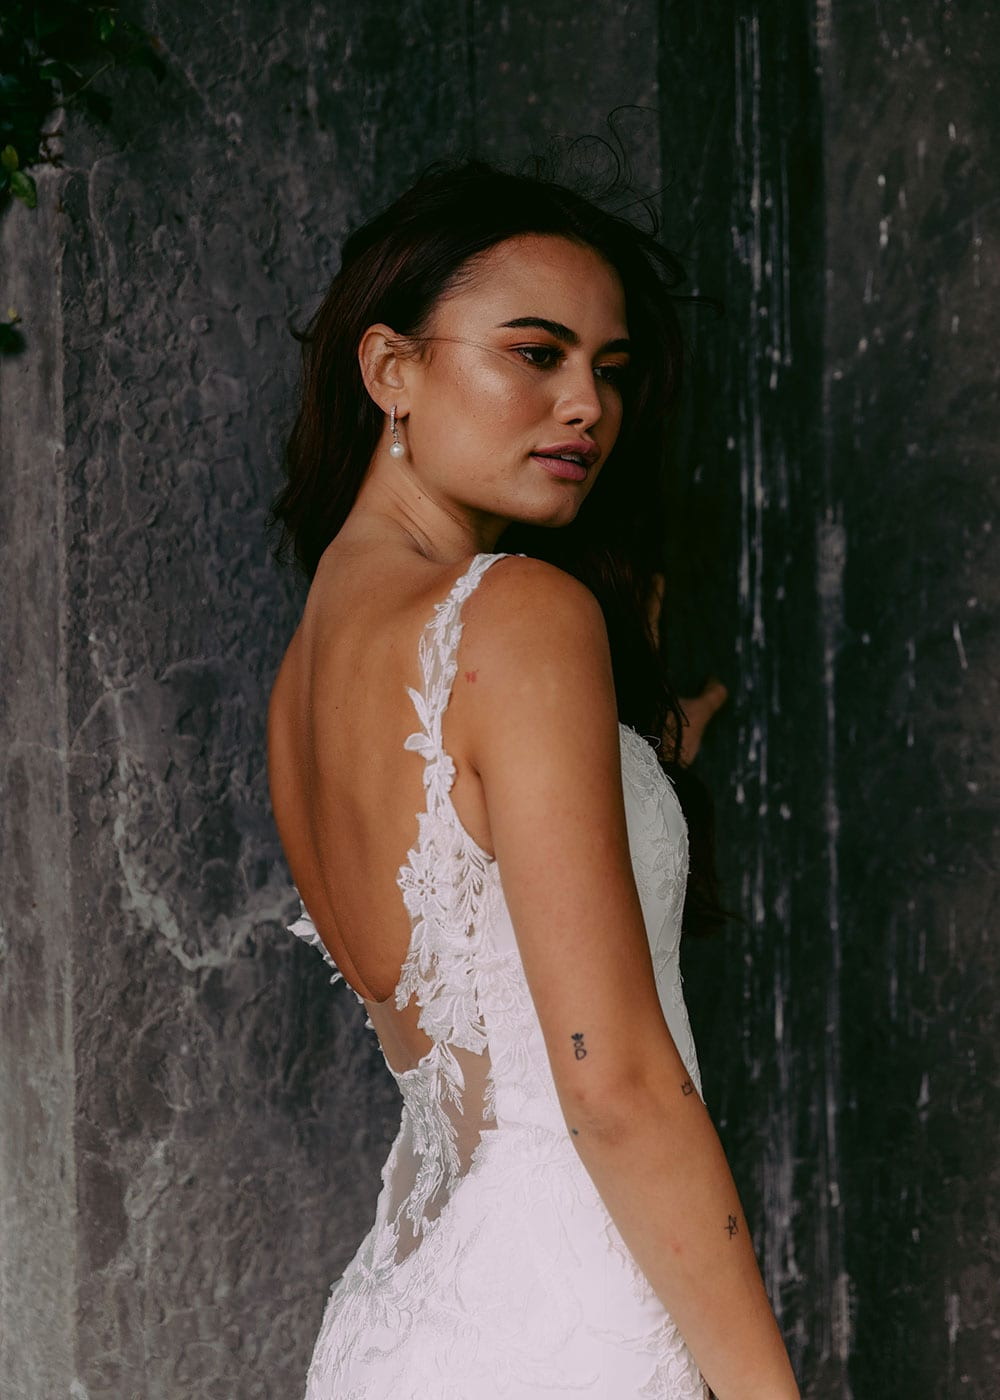 Ana Wedding gown from Vinka Design - This beautiful gown is graced by hand-appliqued delicate floral leaf lace, subtly worked into the front of the bodice and more prominently on the back. A fit-and-flare cut shapes the figure. Model wearing gown highlighting side and lace detail.